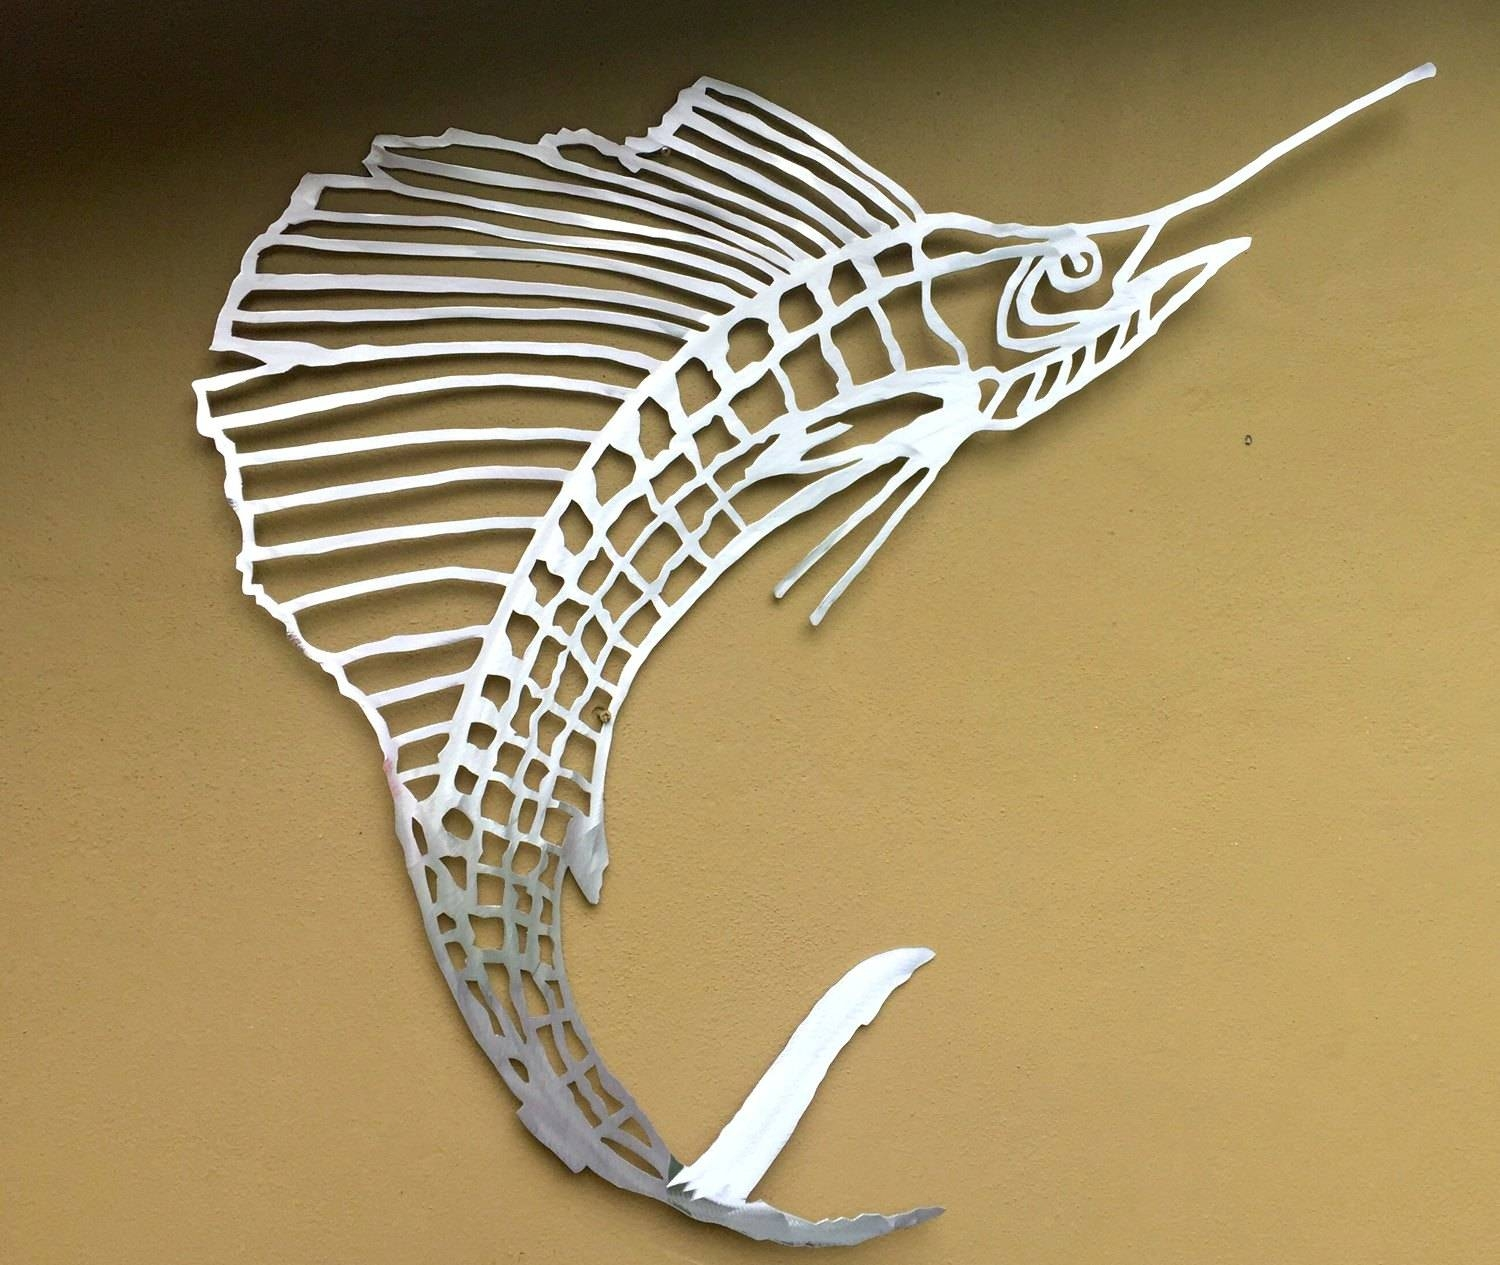 Wall Arts ~ Metal Fish Wall Art Sculptures Nz Stripped Bass Metal Pertaining To Most Current New Zealand Metal Wall Art (View 13 of 20)